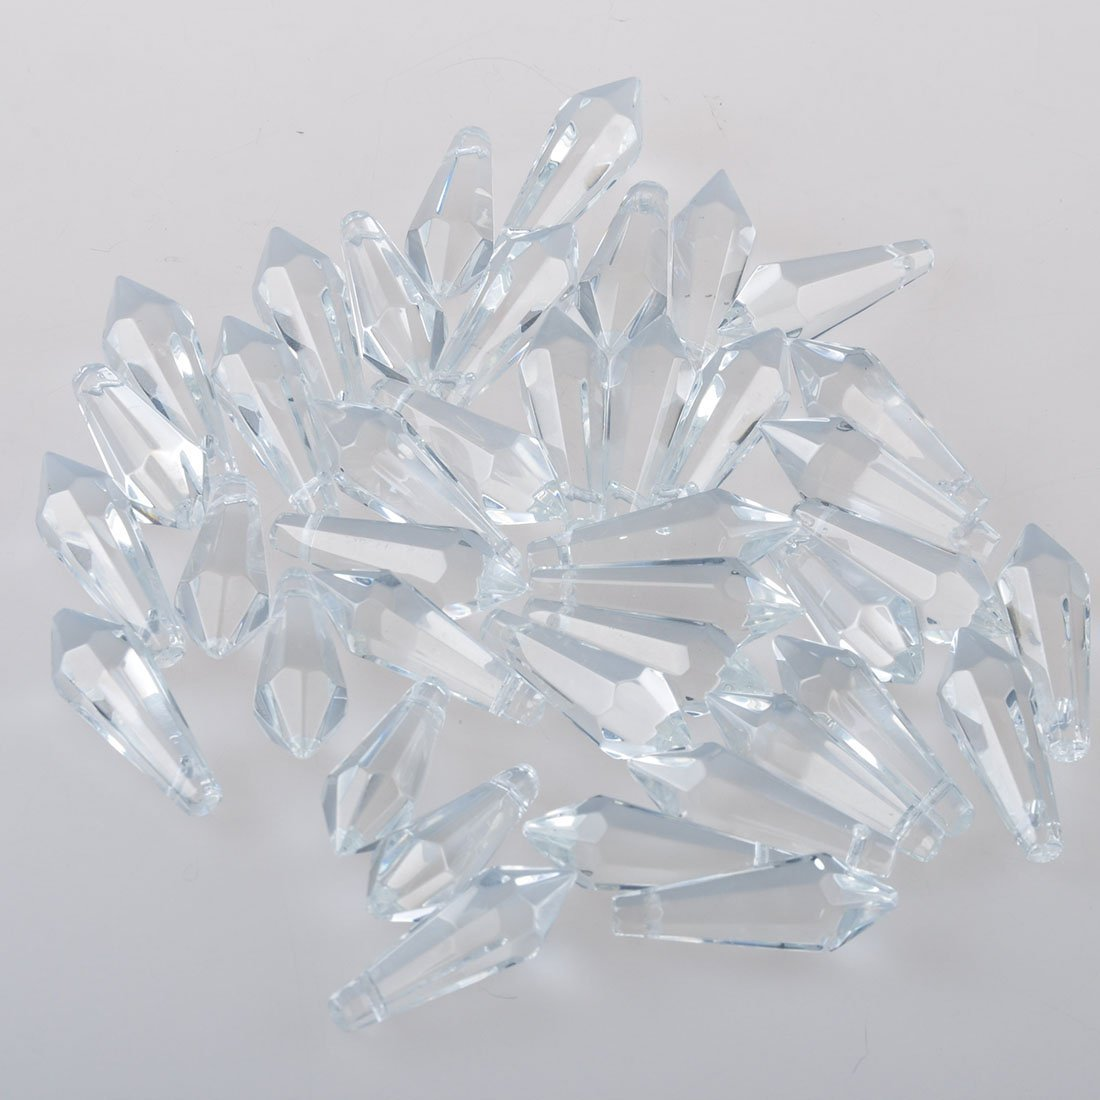 Sun Cling 100mm Ox Leg Icicle Crystal Prisms,Pack of 10